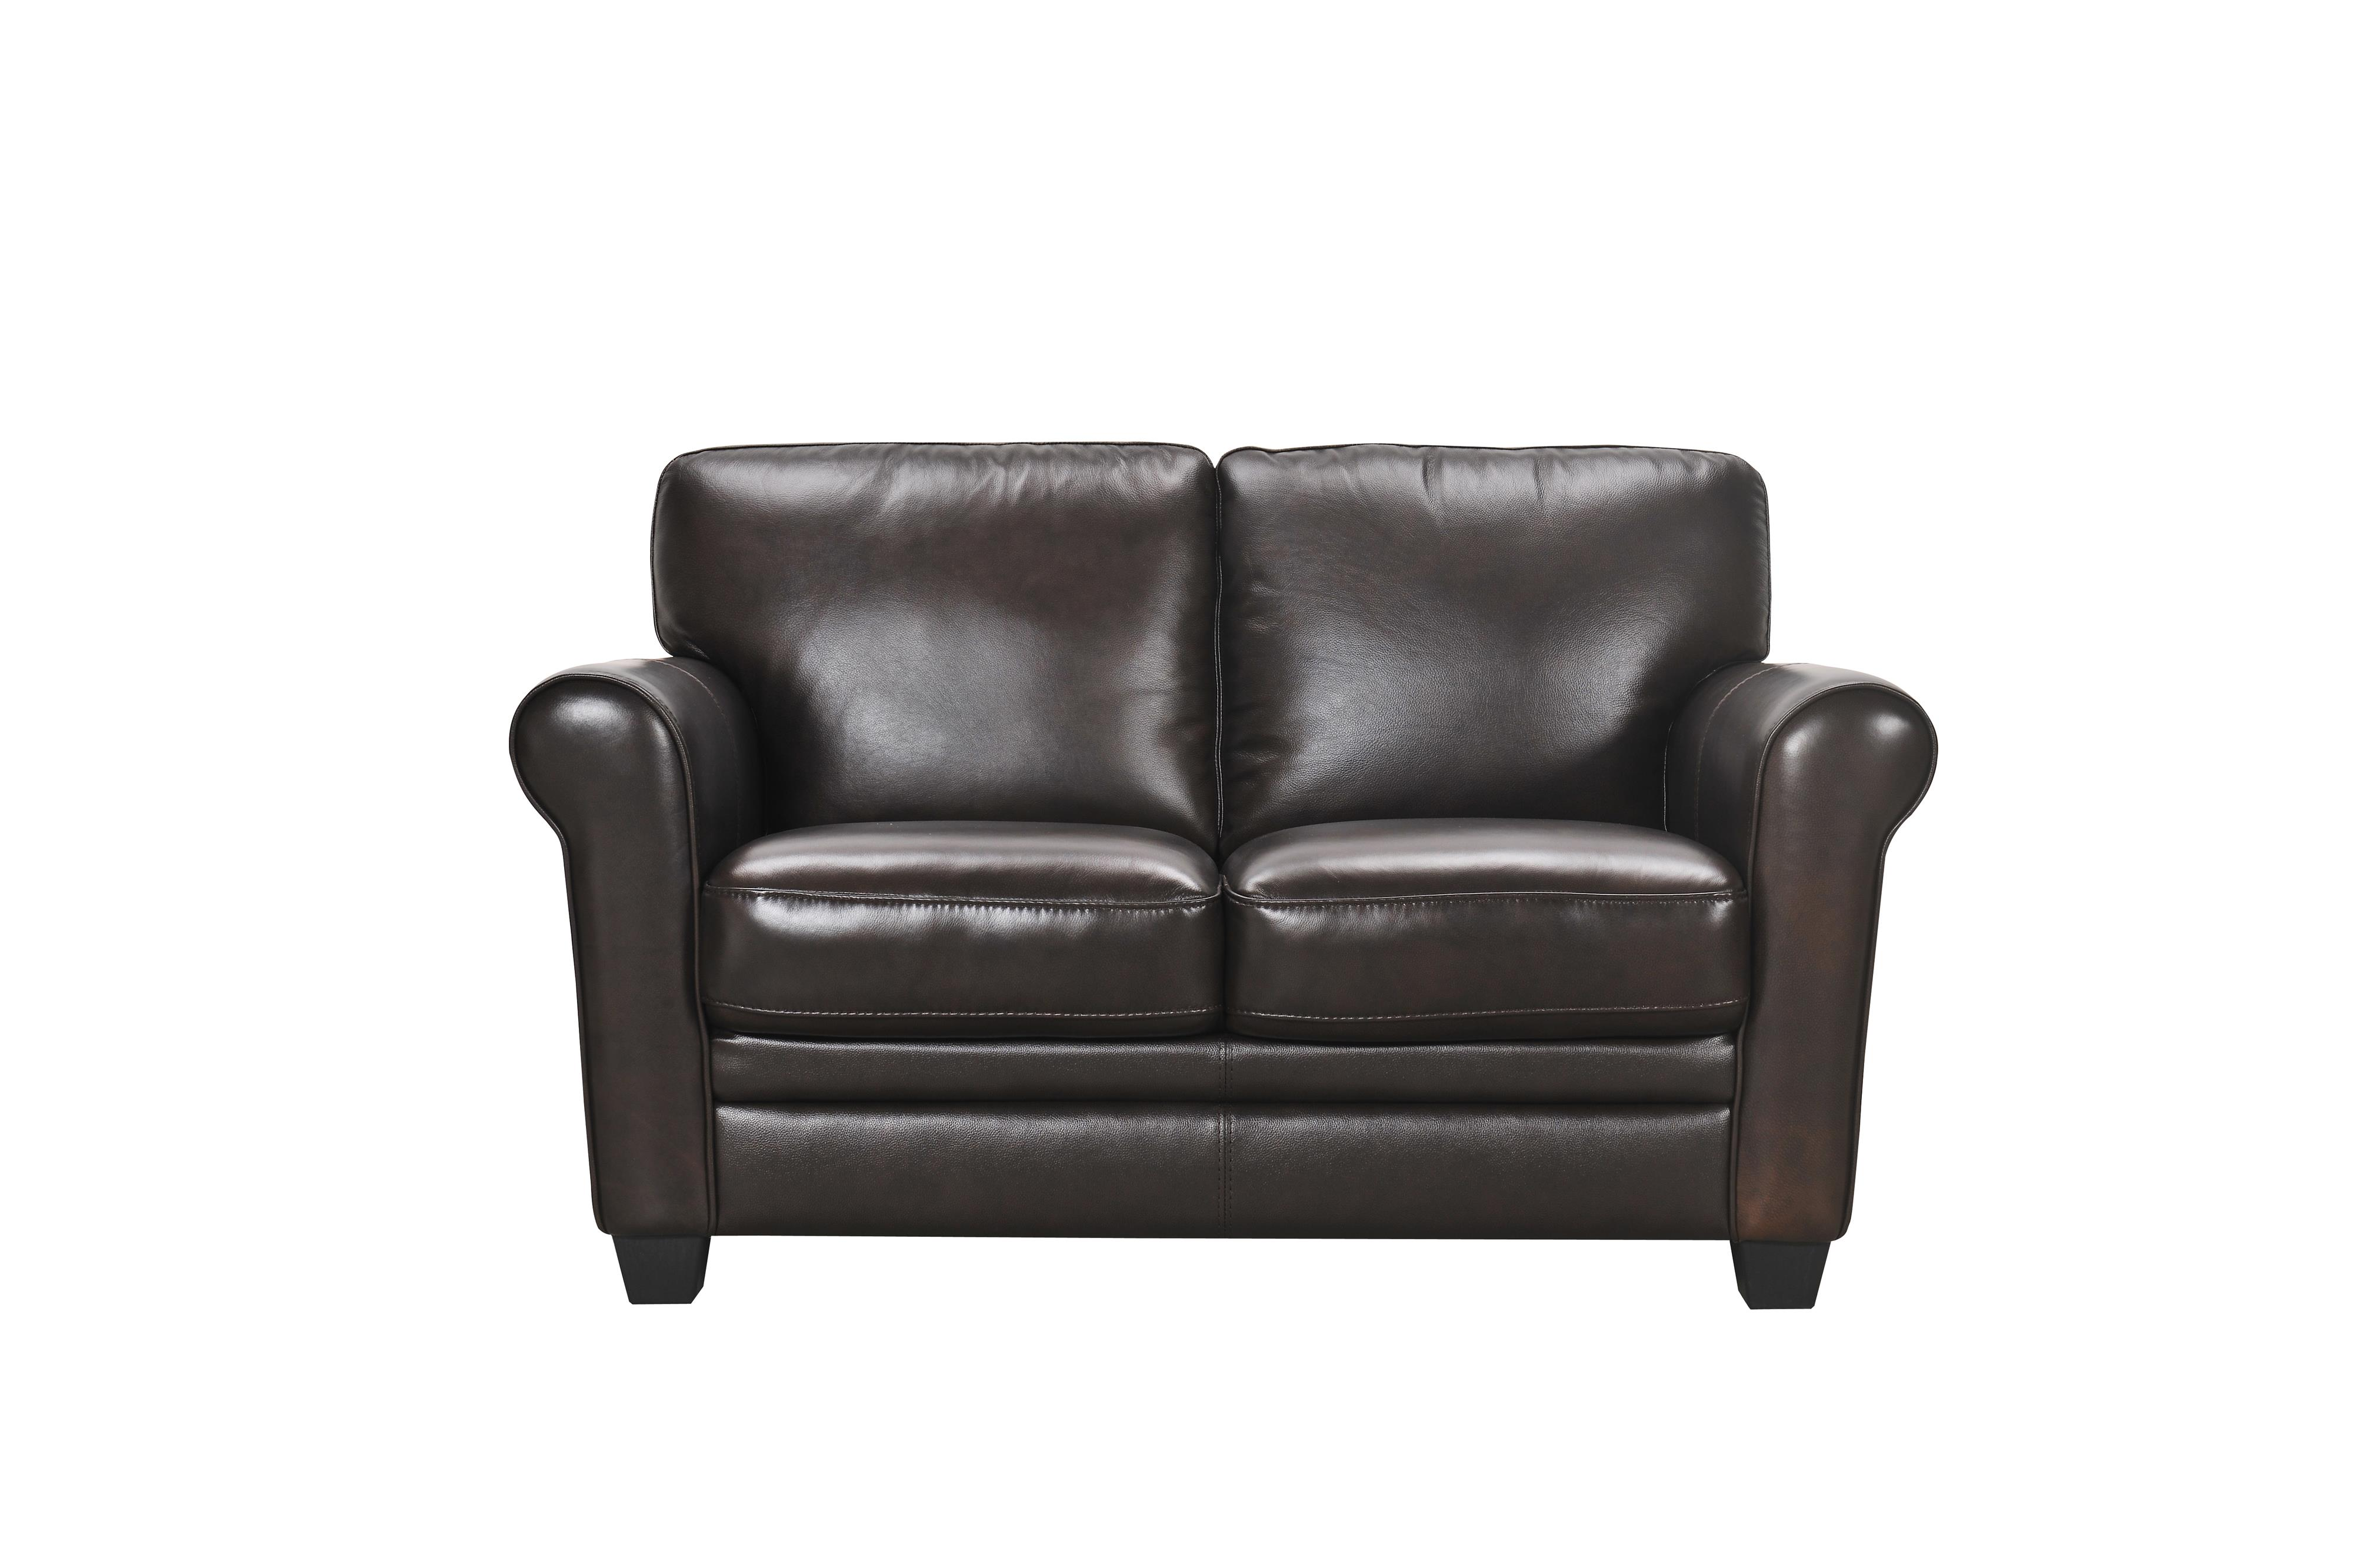 30960 Leather Loveseat with Rolled Arms by Violino at Dunk & Bright Furniture